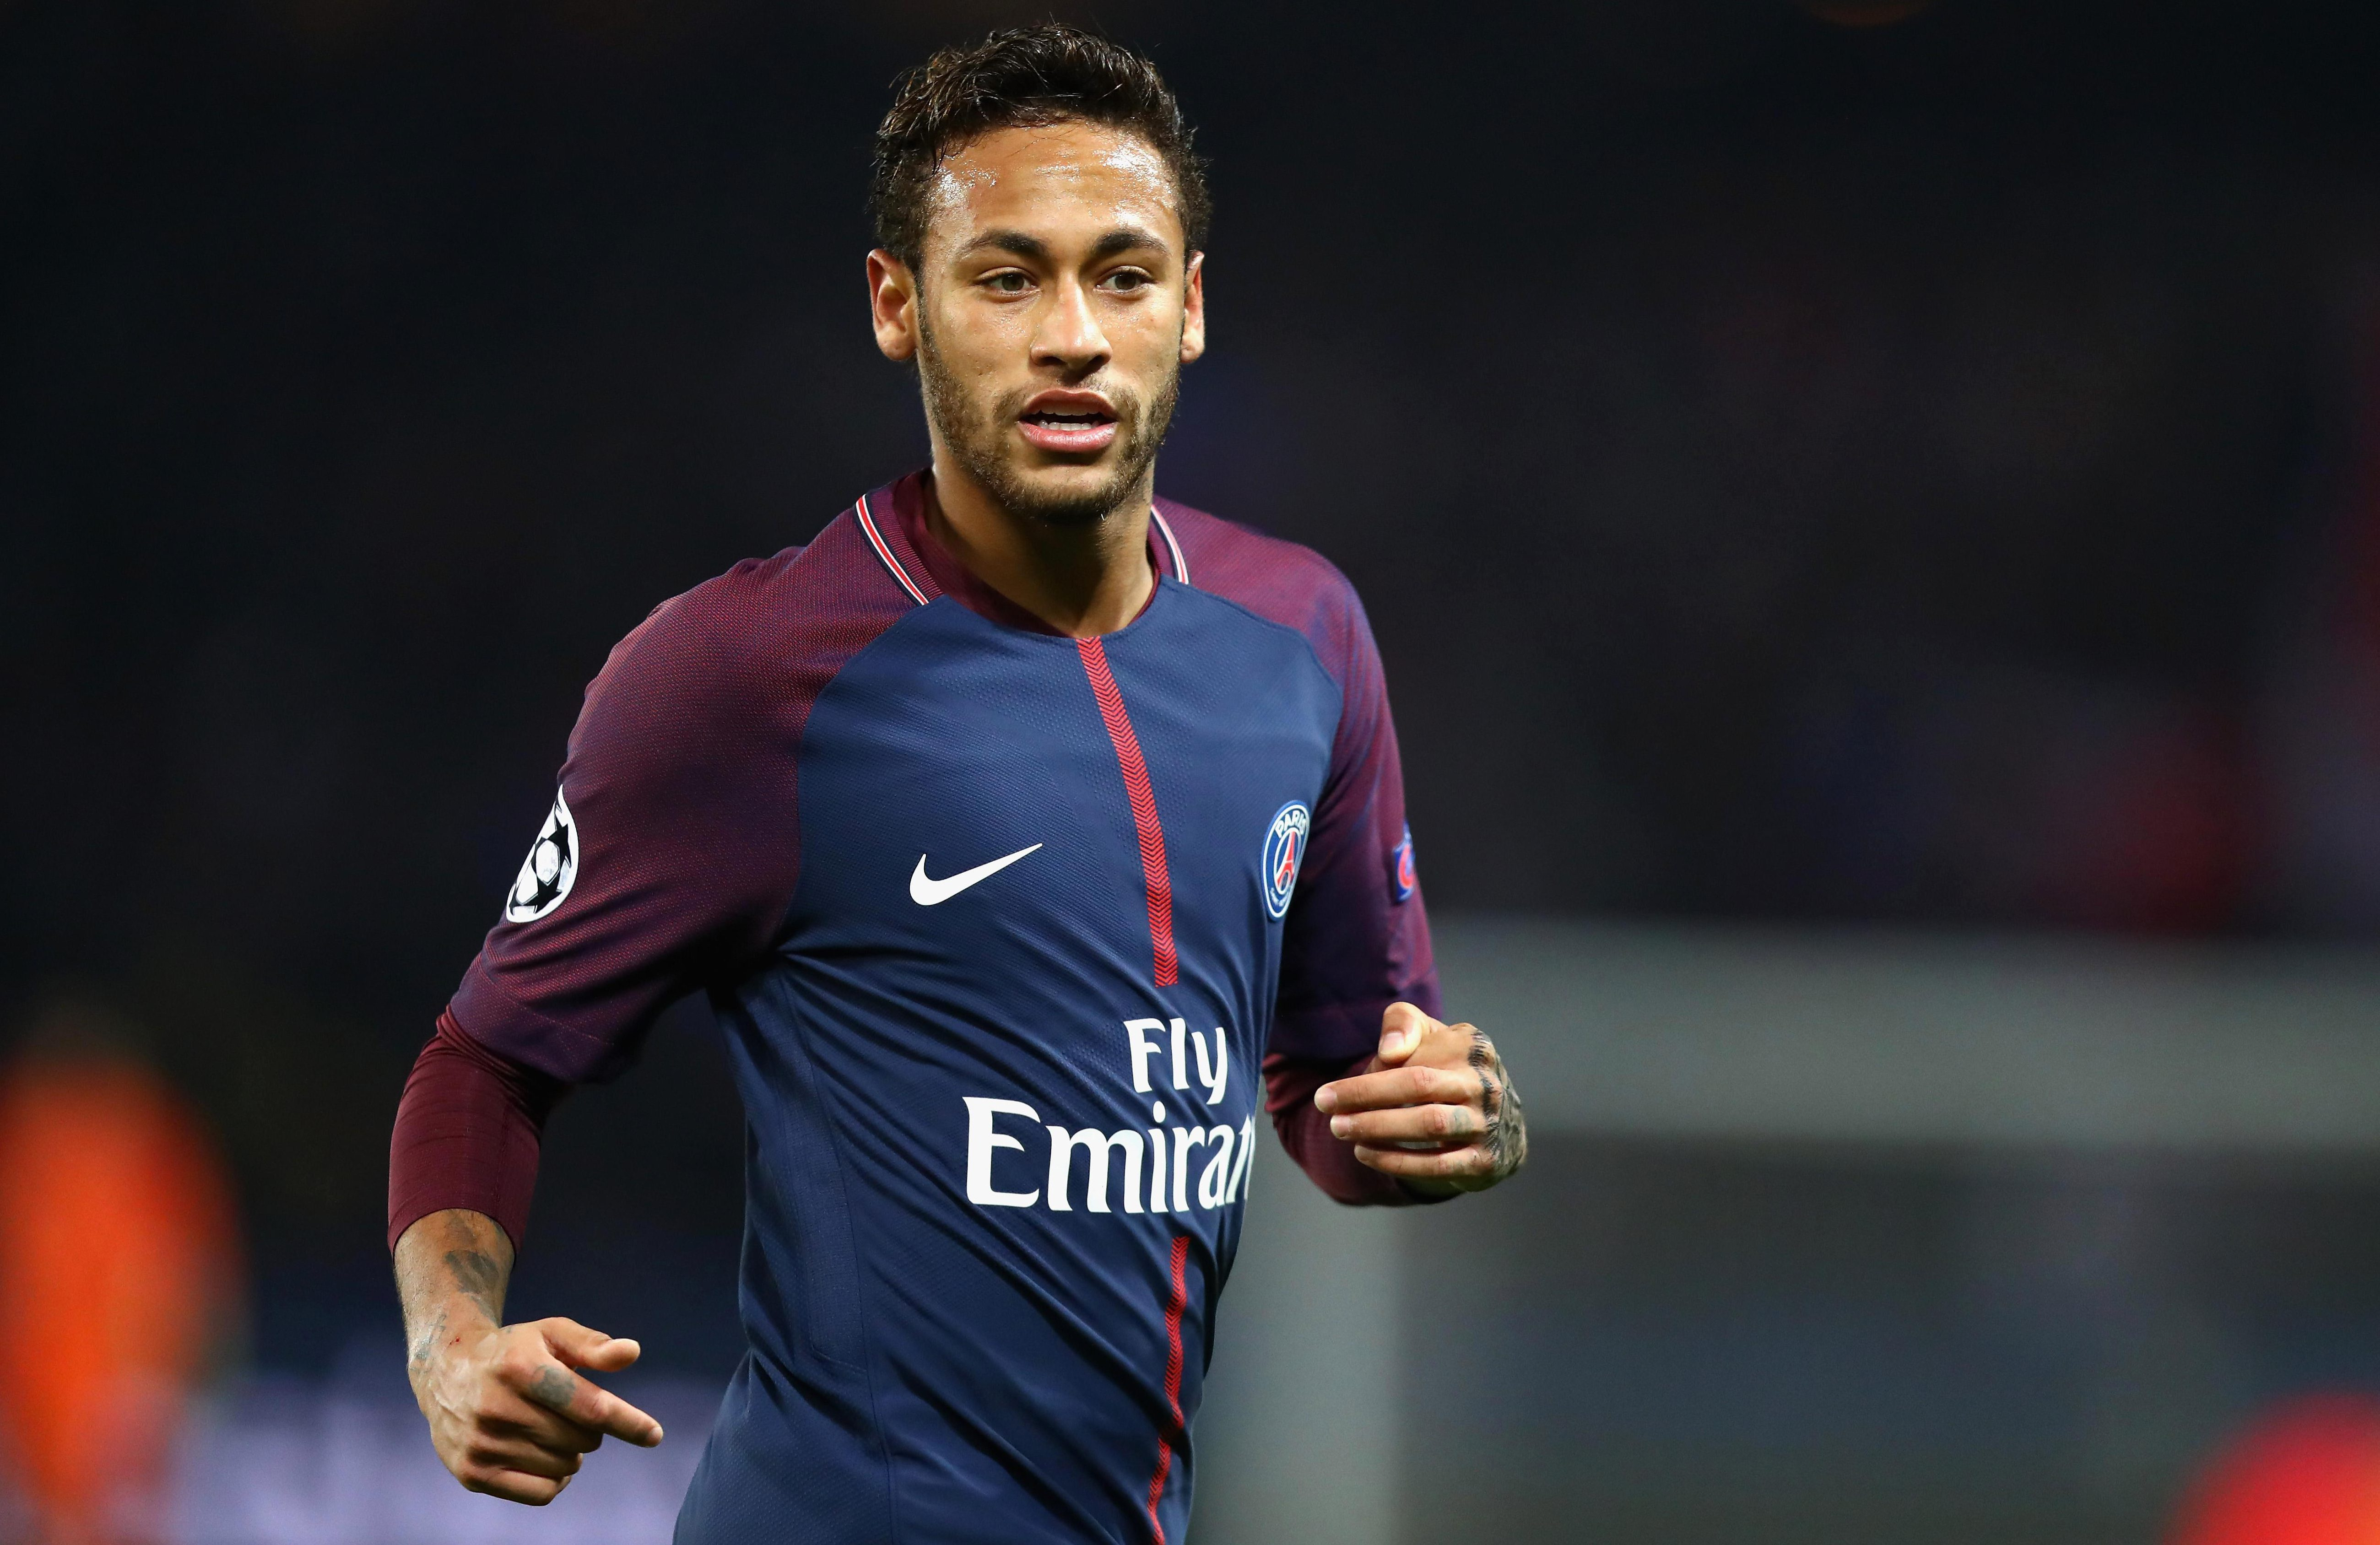 Paris Saint-Germain ace Neymar has slotted into life seamlessly in Ligue 1 since leaving Barcelona